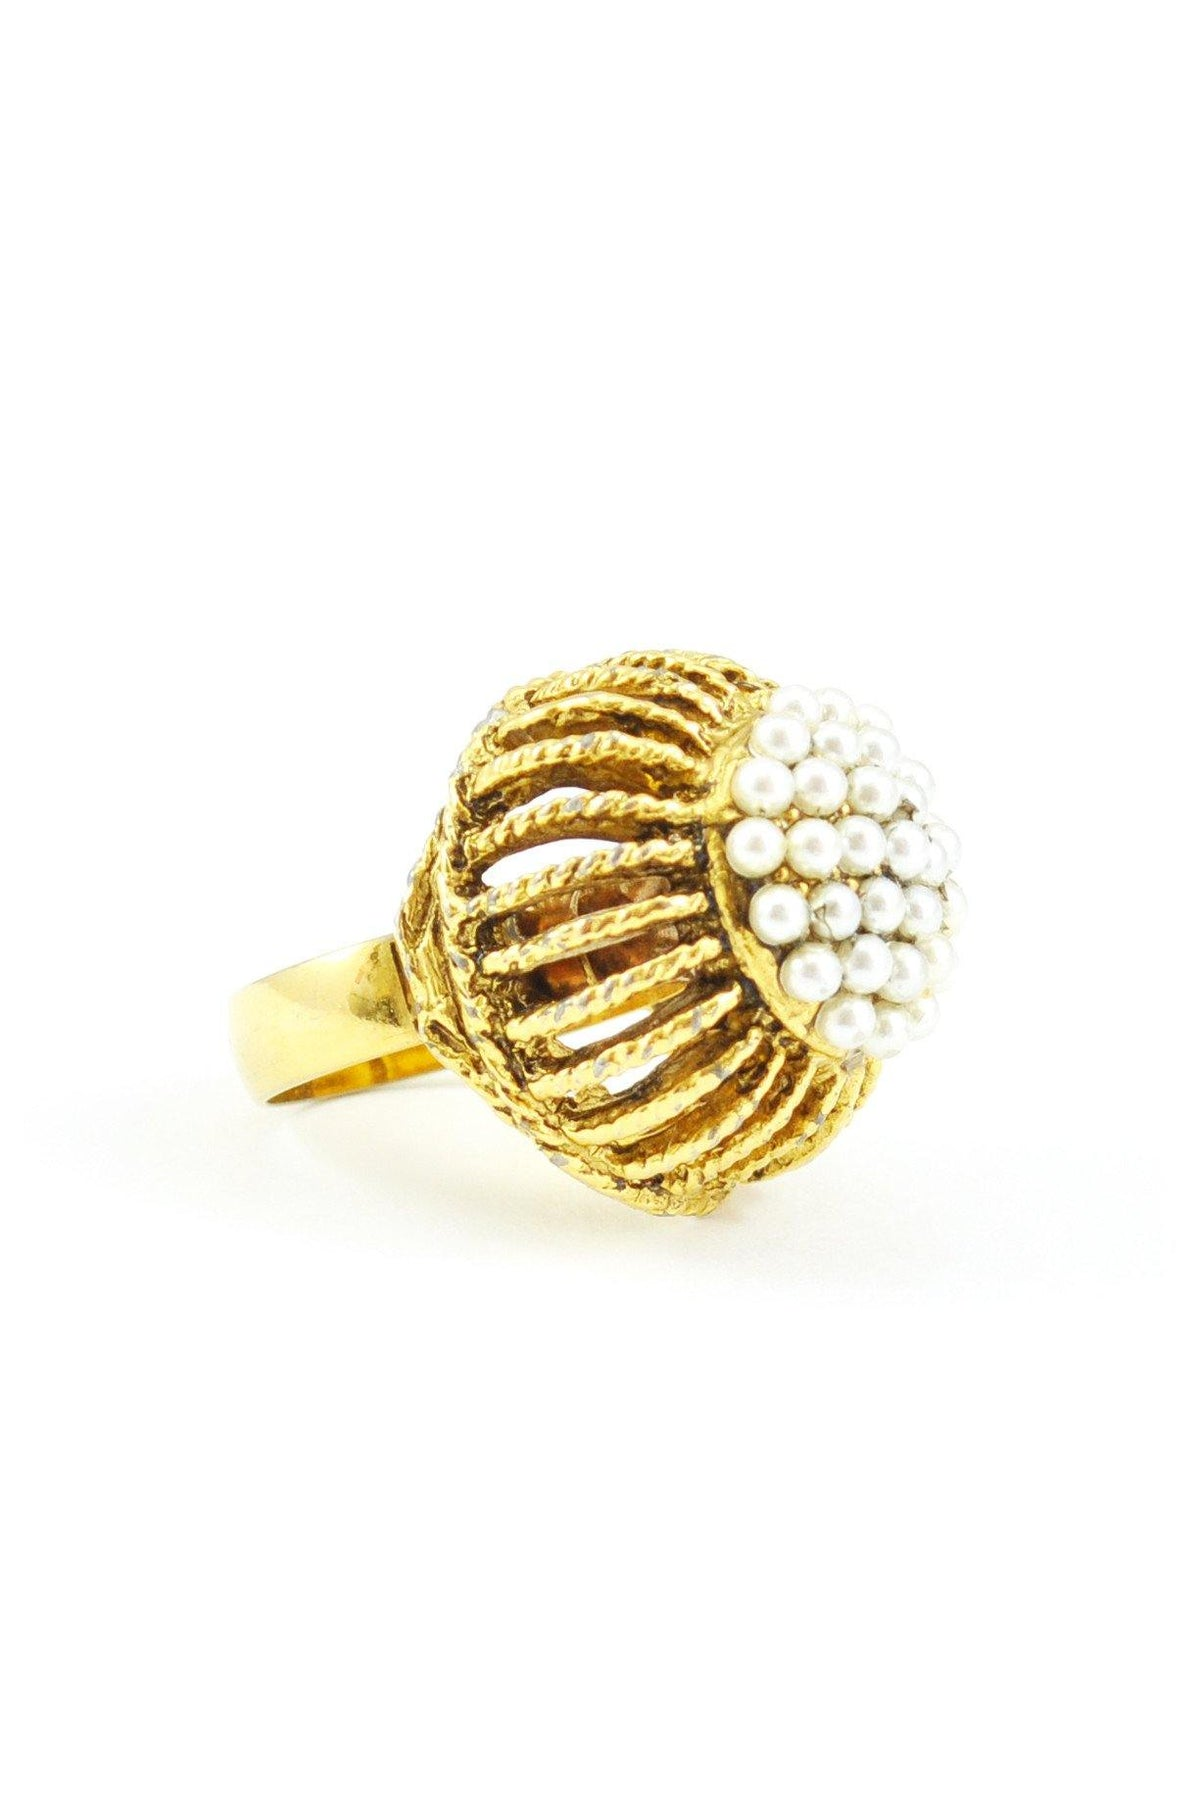 60's__Vintage__Pearl Burst Cocktail Ring - Sweet & Spark